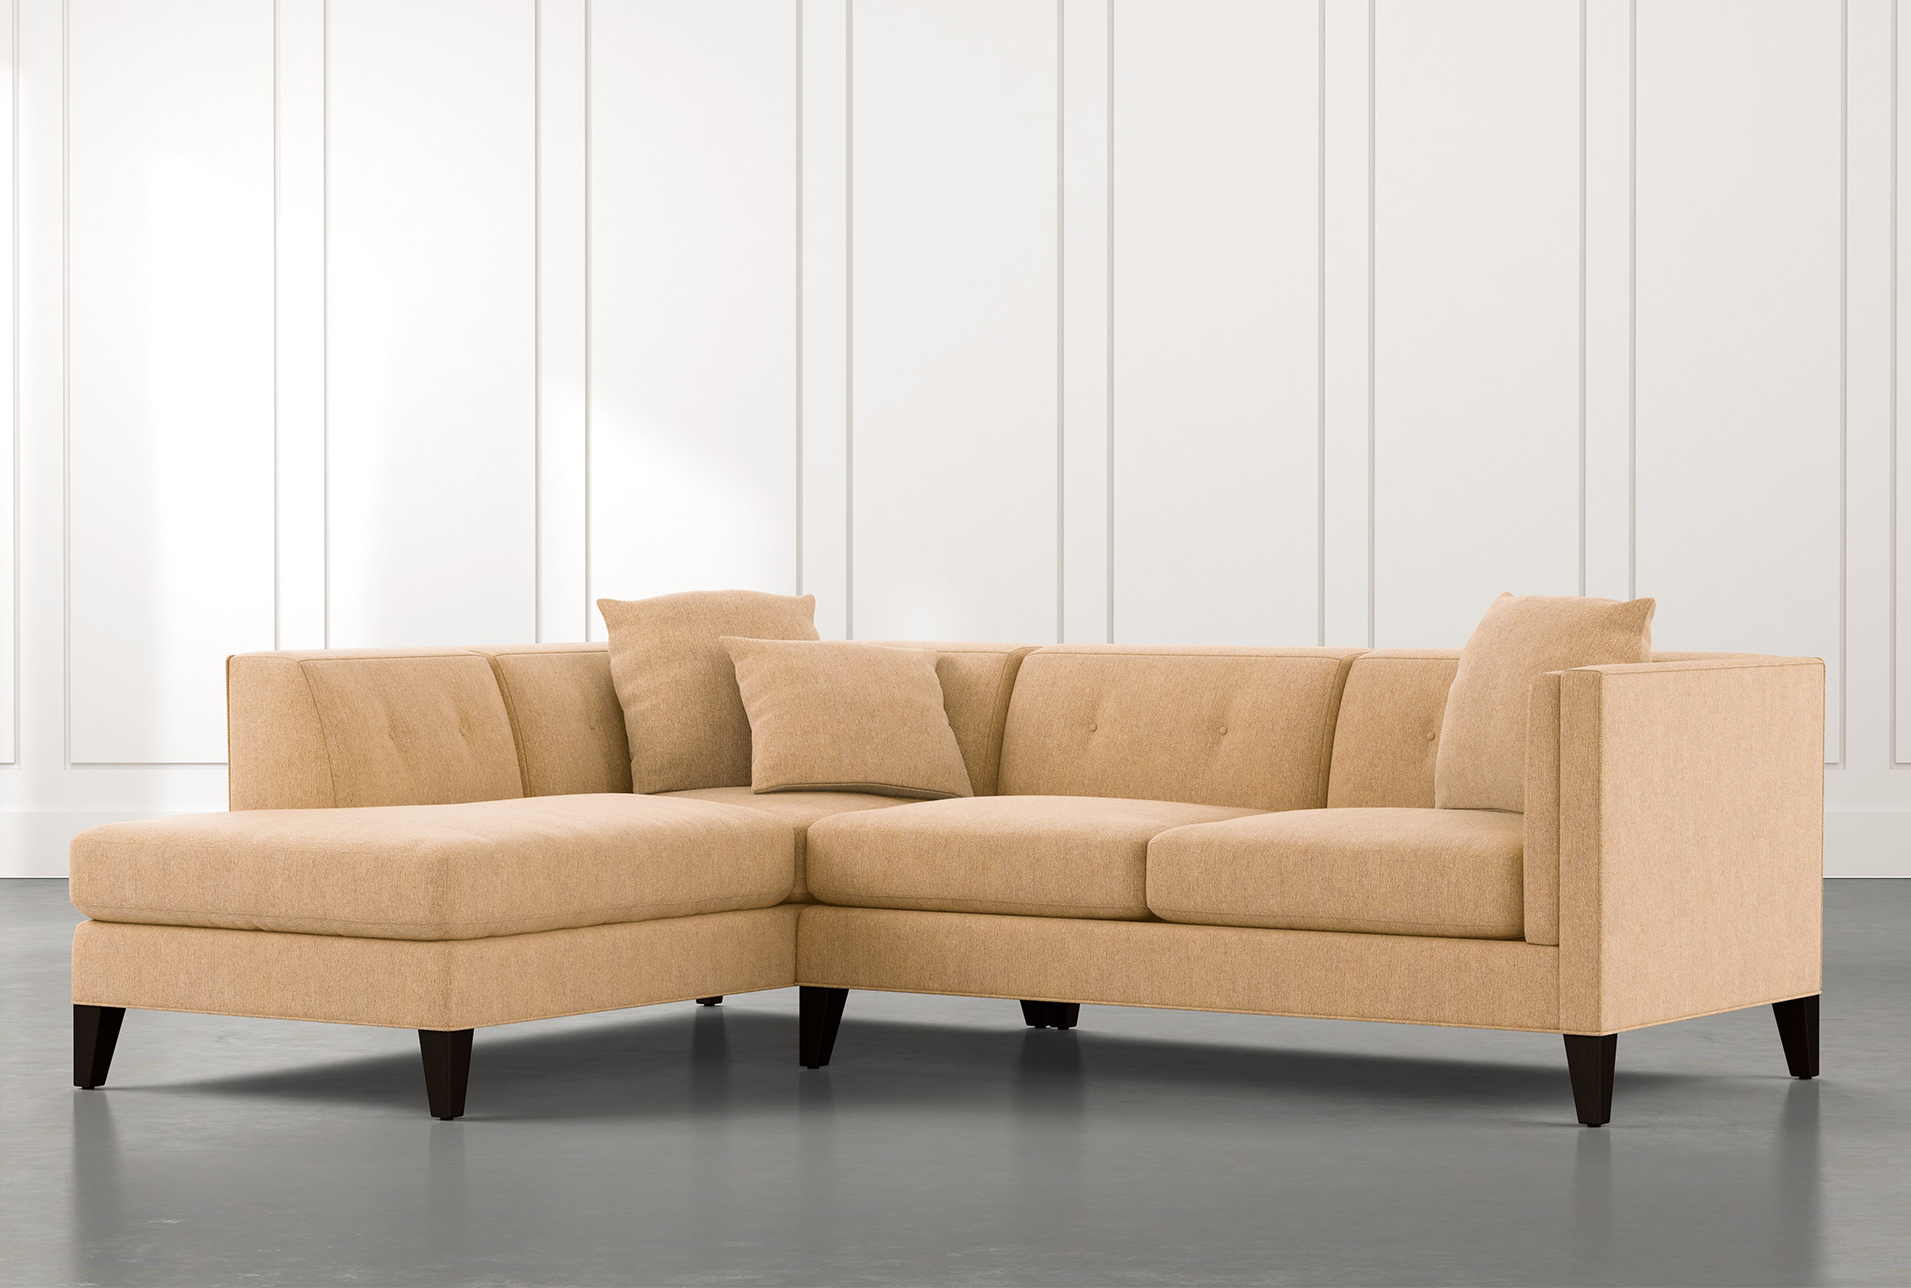 Trendy 2pc Connel Modern Chaise Sectional Sofas Black Within Avery Ii Yellow 2 Piece Sectional Sofa With Right Arm (View 12 of 20)